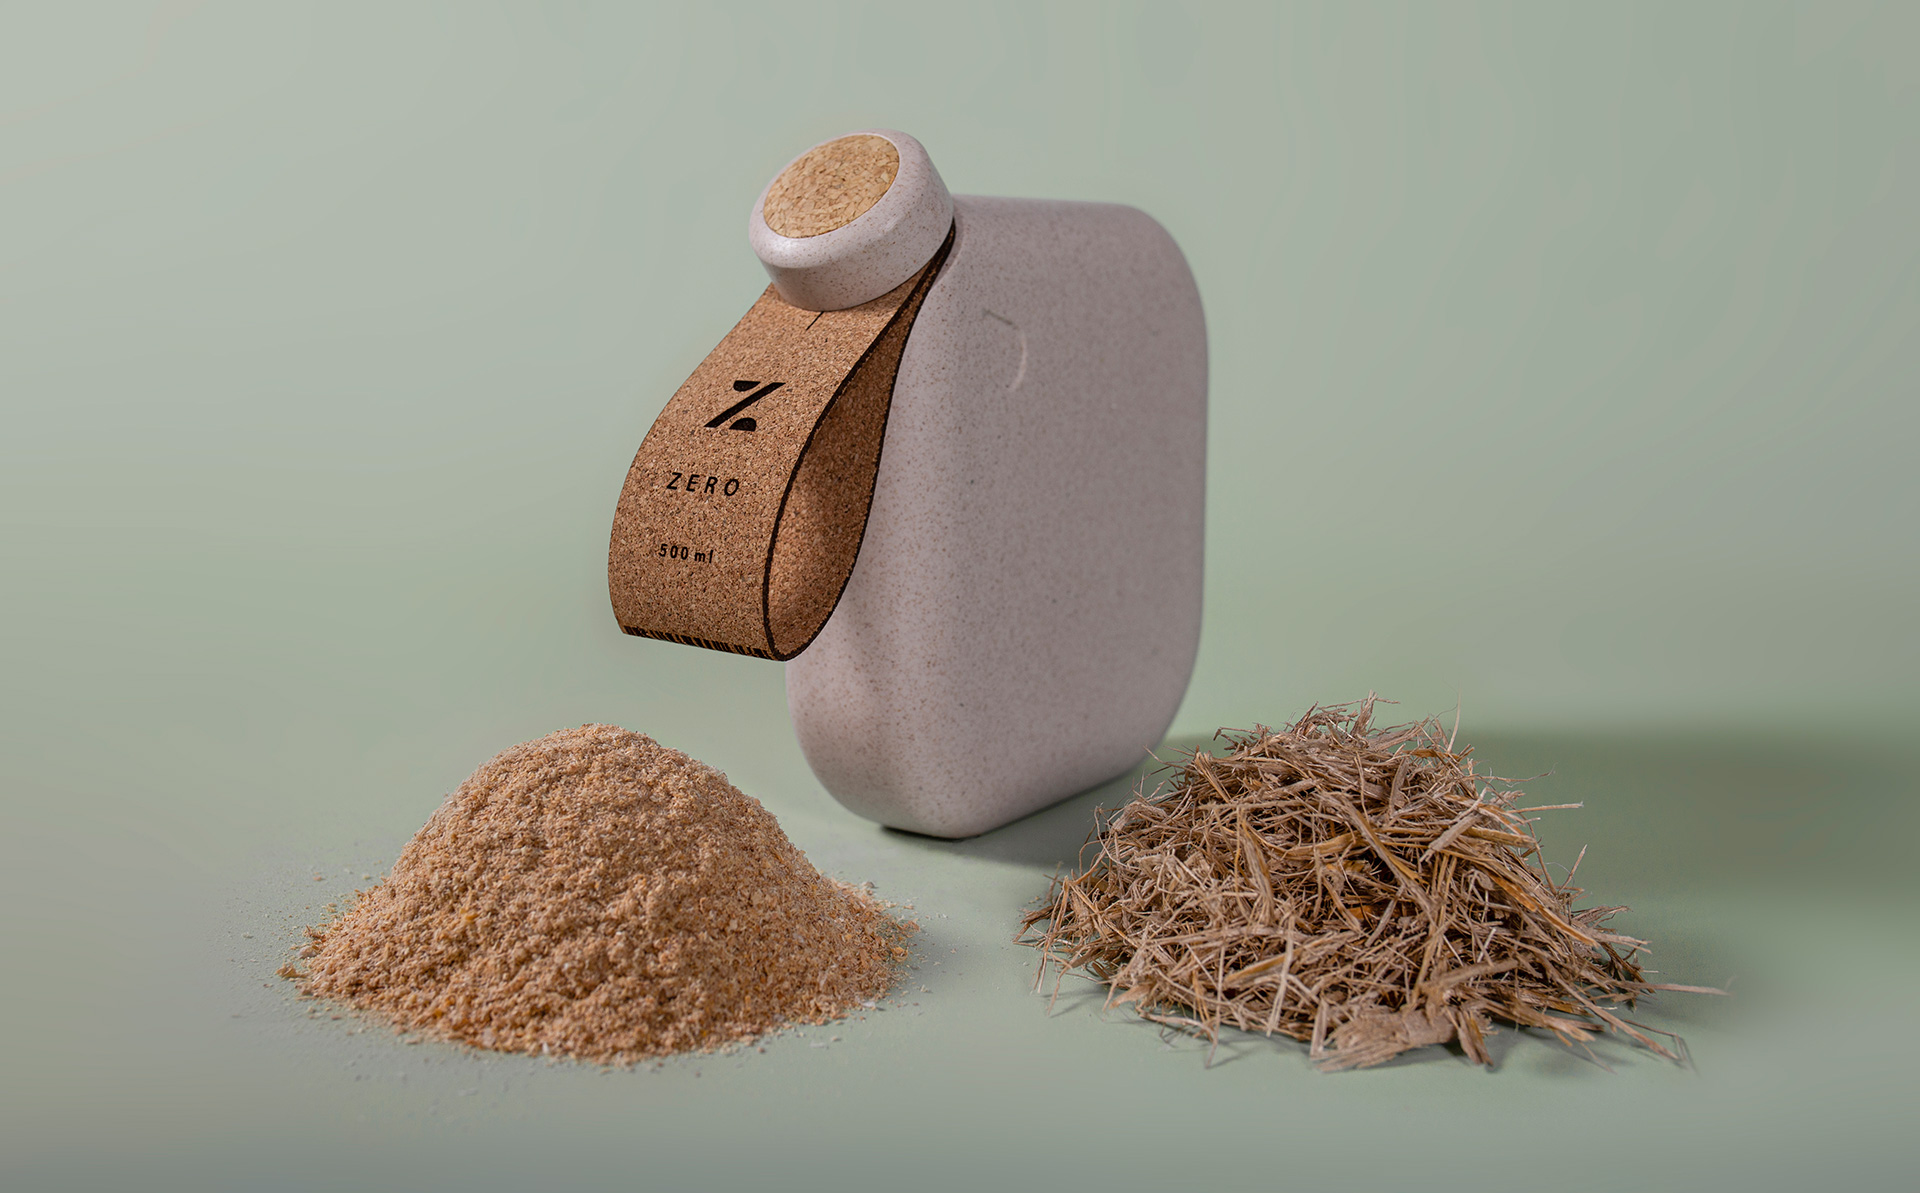 The water bottle has been made from cork and a commercially compostable bioplastic material | Paul Priestman | PriestmanGoode | STIRworld